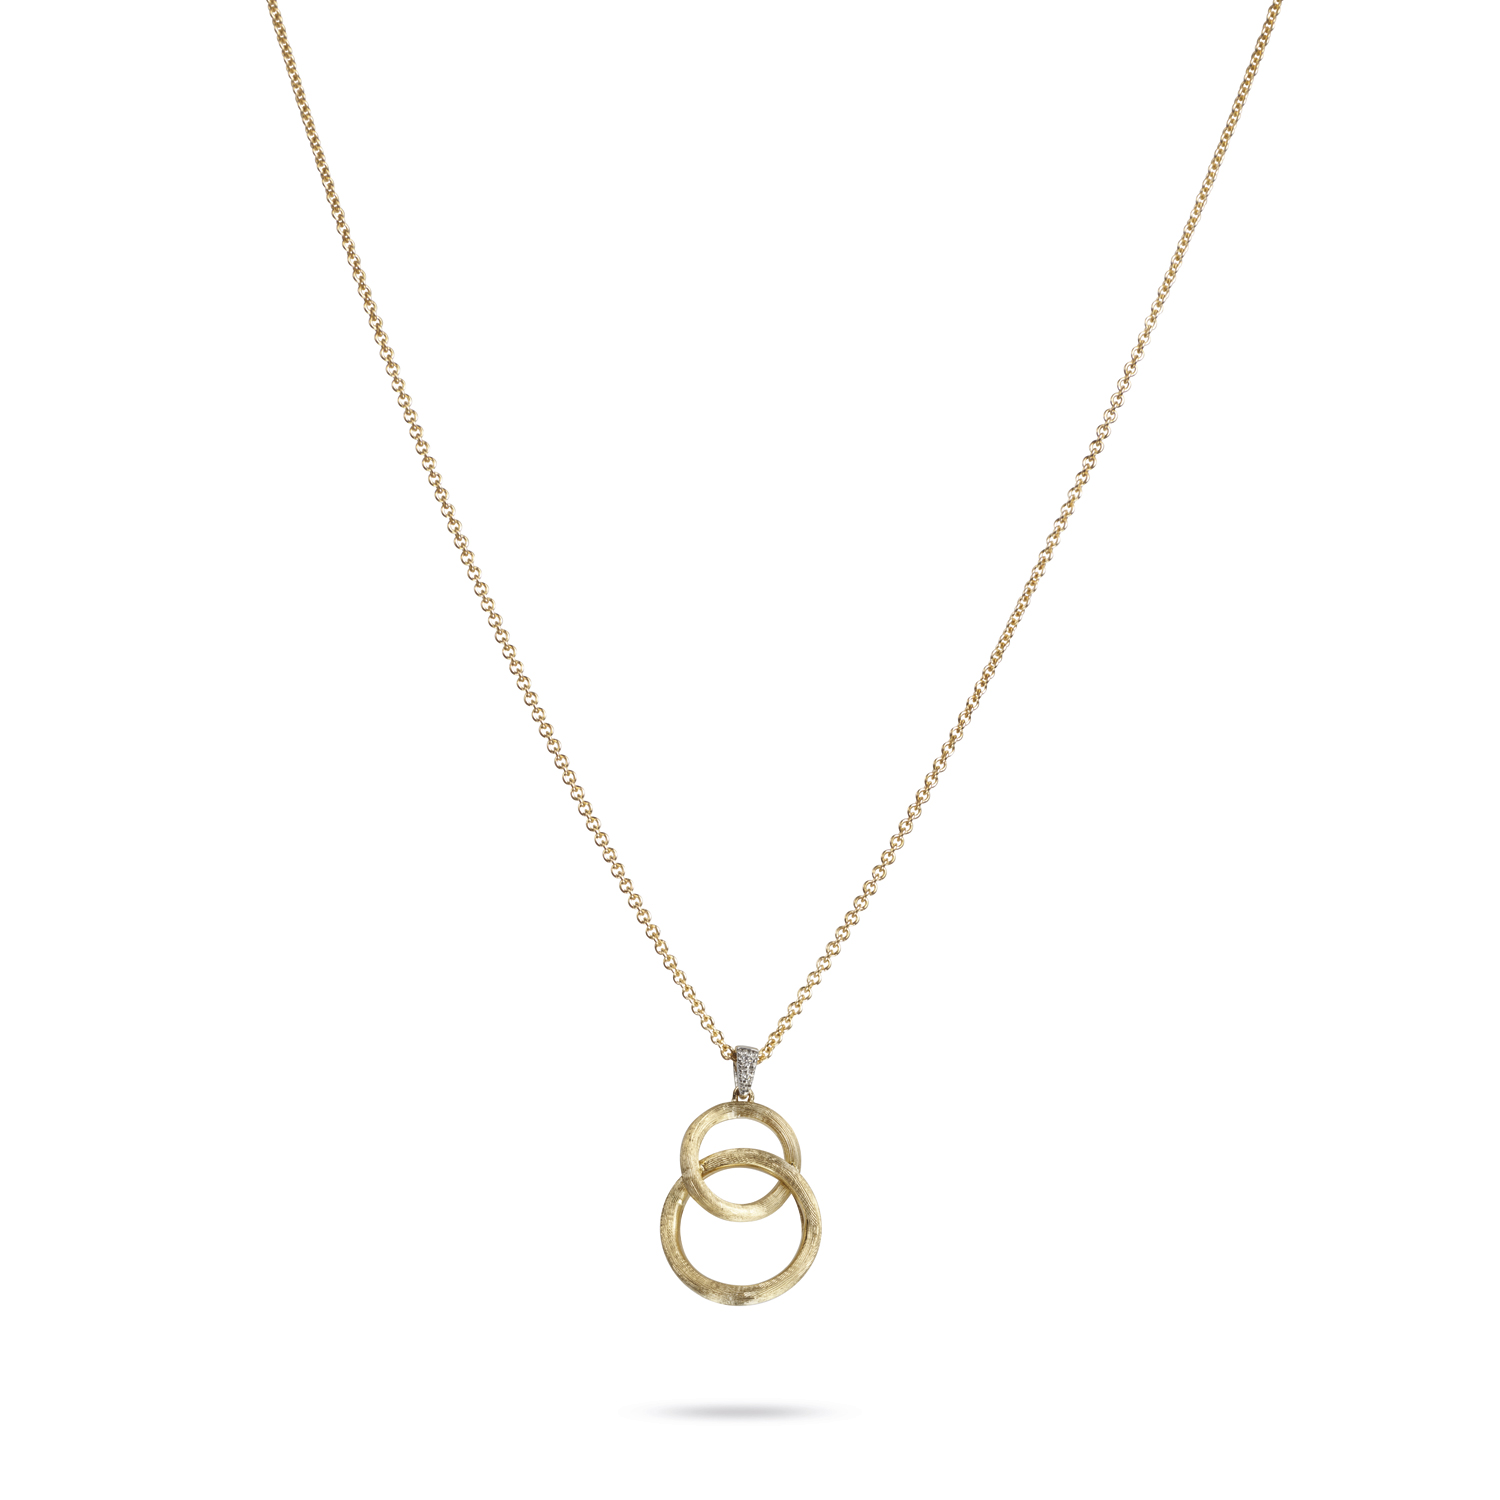 Marco Bicego Delicati Linked Circles Pendant